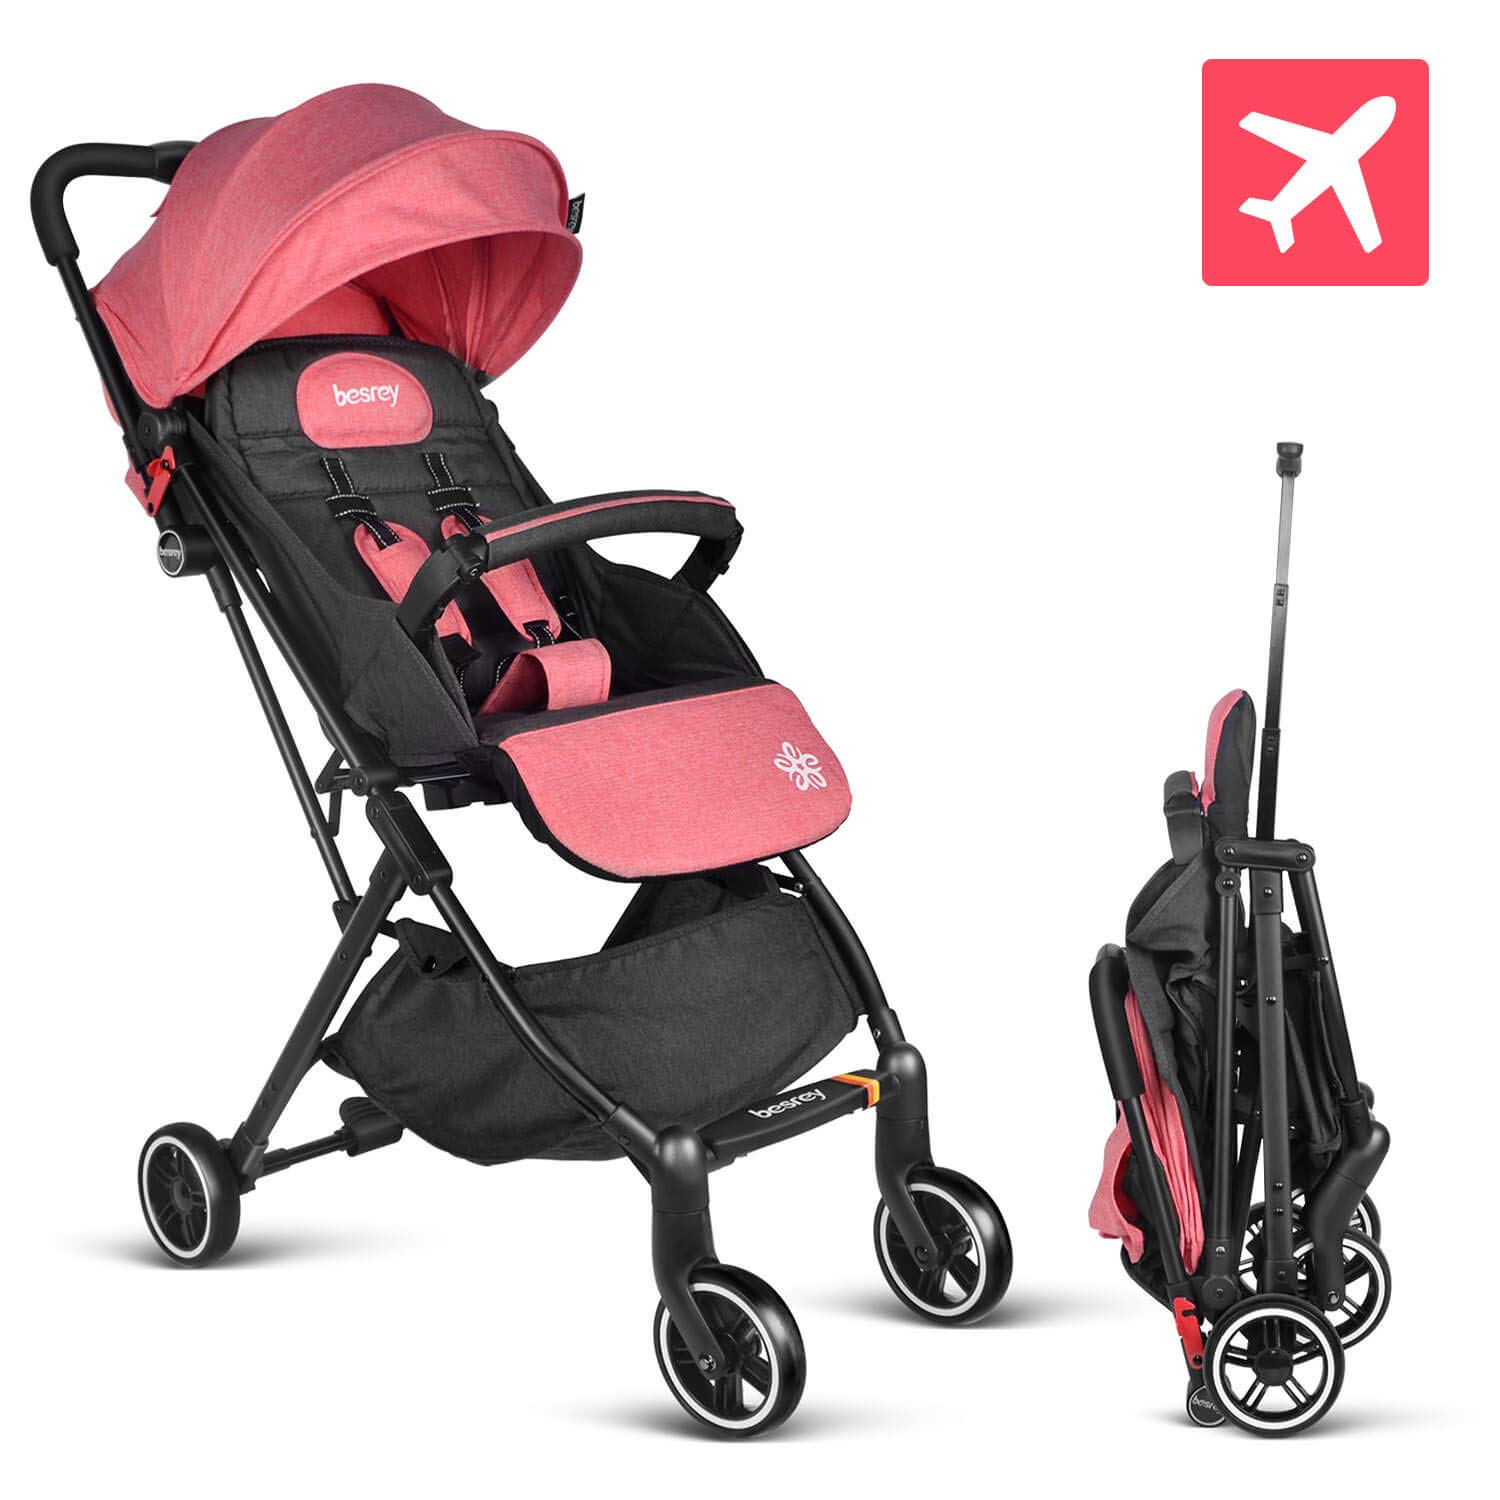 besrey Baby Stroller Pram Baby Carriage Reclining Seat for Airplane Compartment - Pink